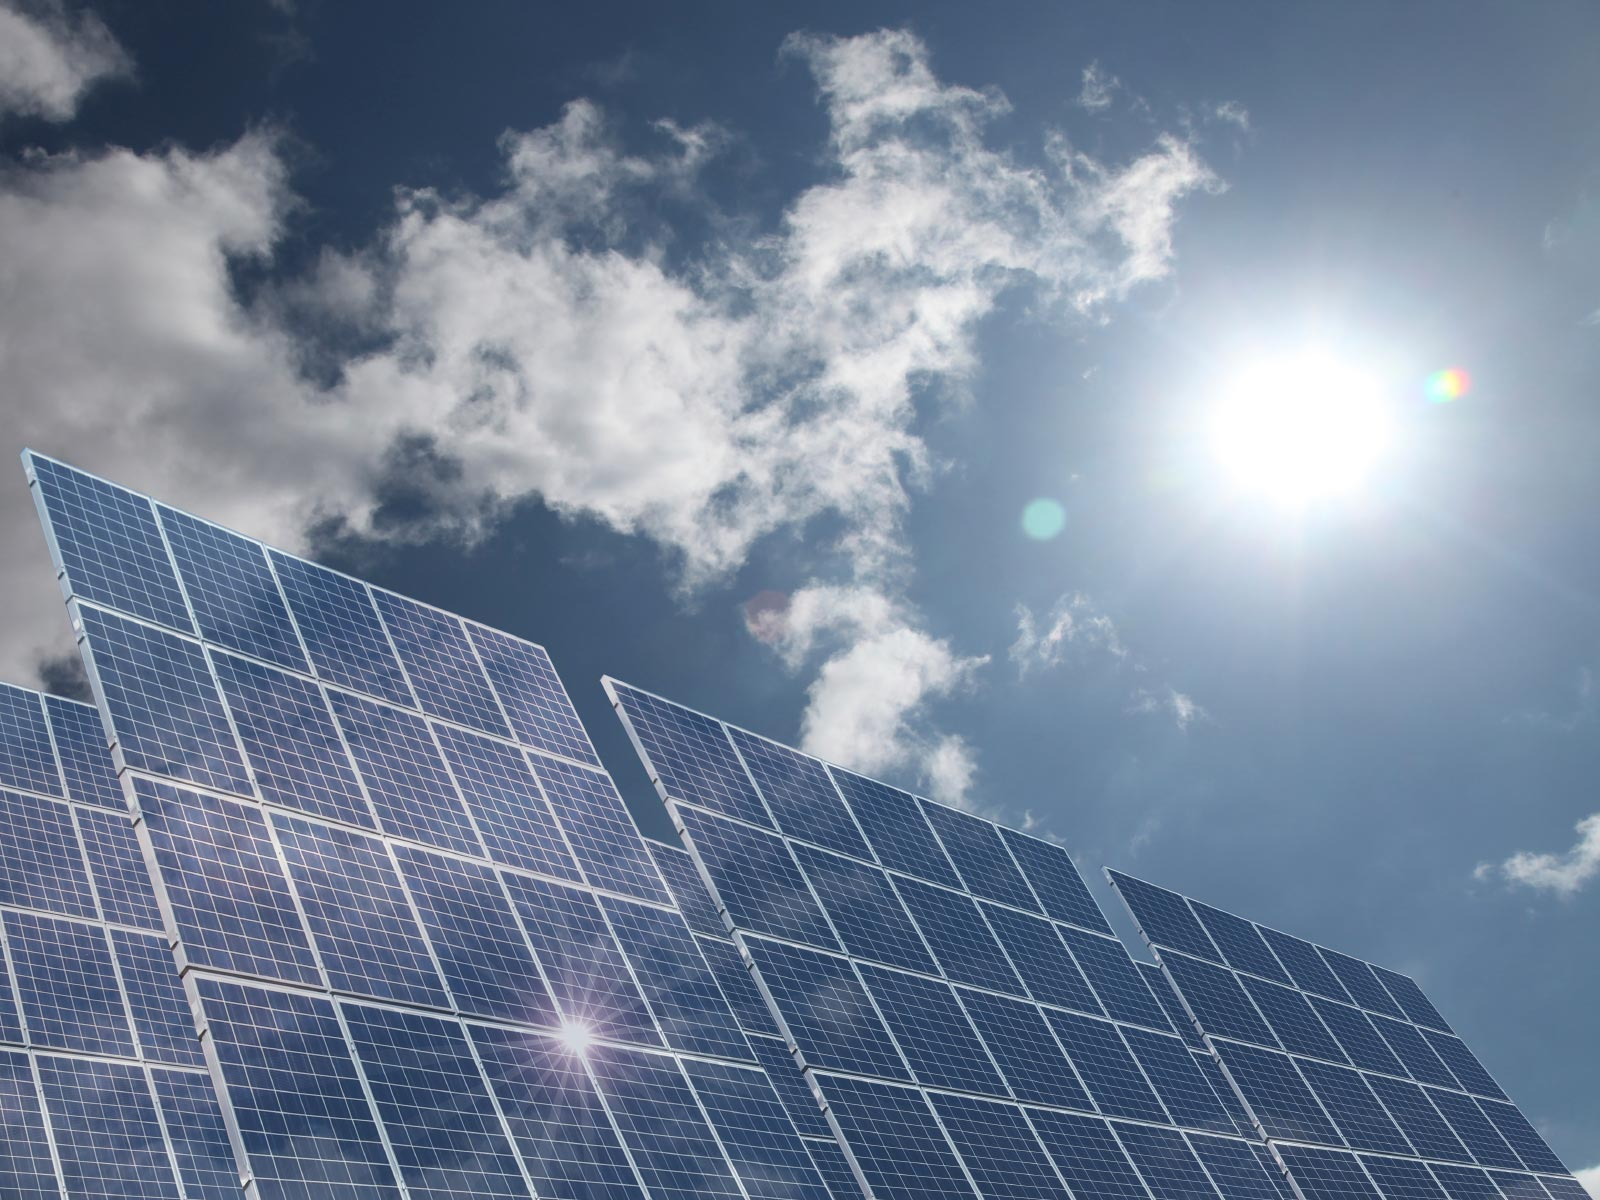 solar power plant interview questions and answers pdf